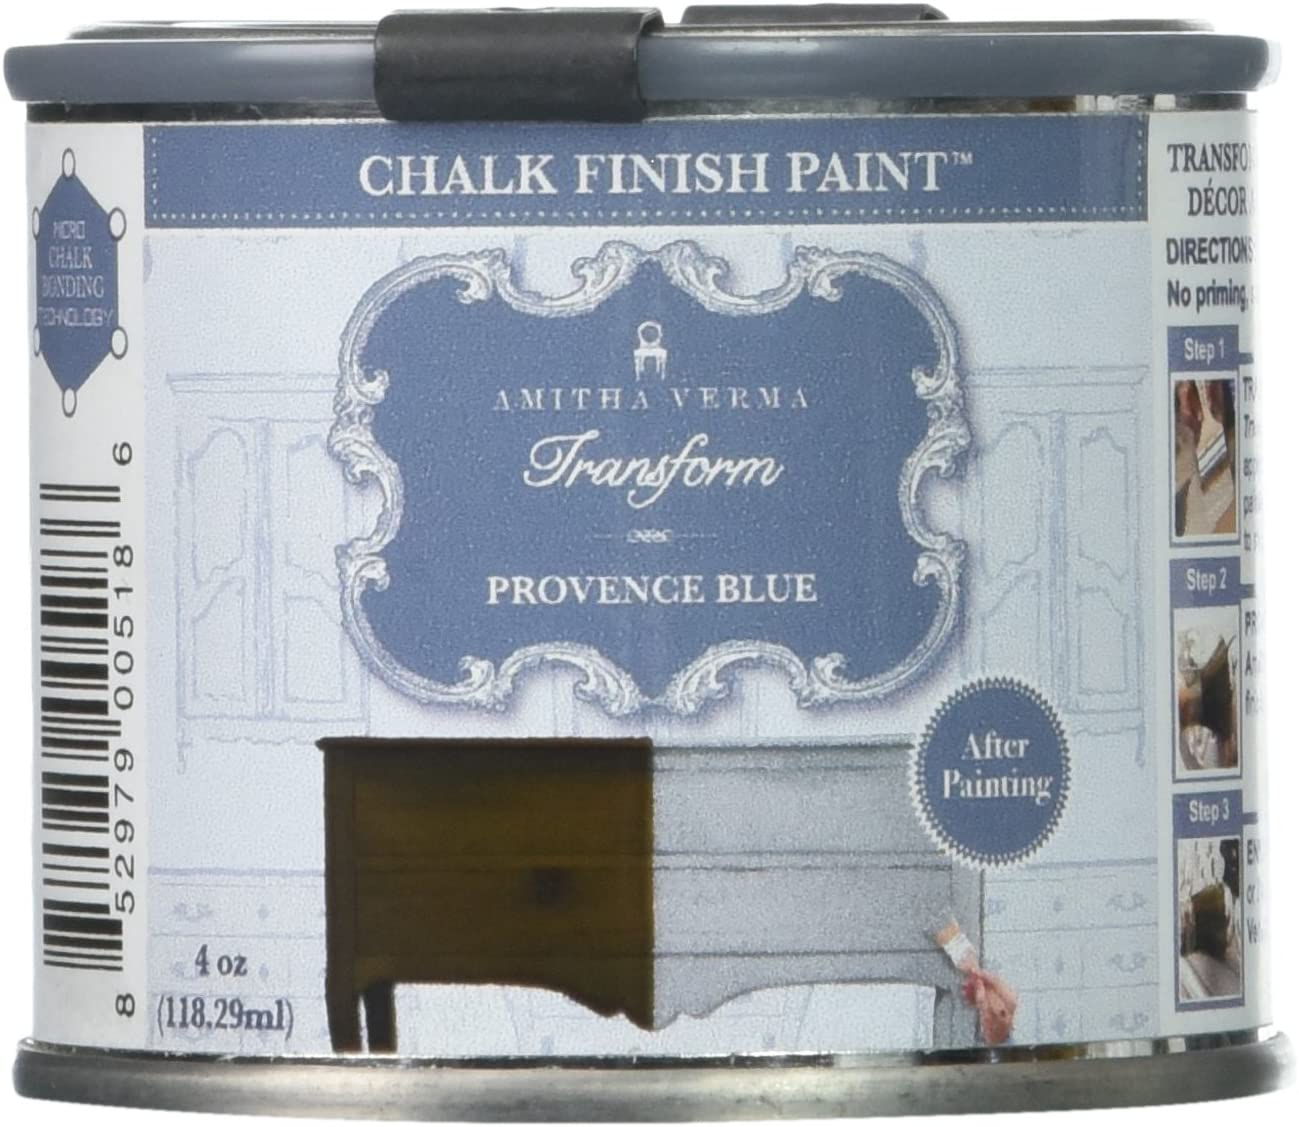 Amitha Verma Chalk Finish Paint, No Prep, One Coat, Fast Drying   DIY Makeover for Cabinets, Furniture & More, 4 Ounce, (Provence Blue)